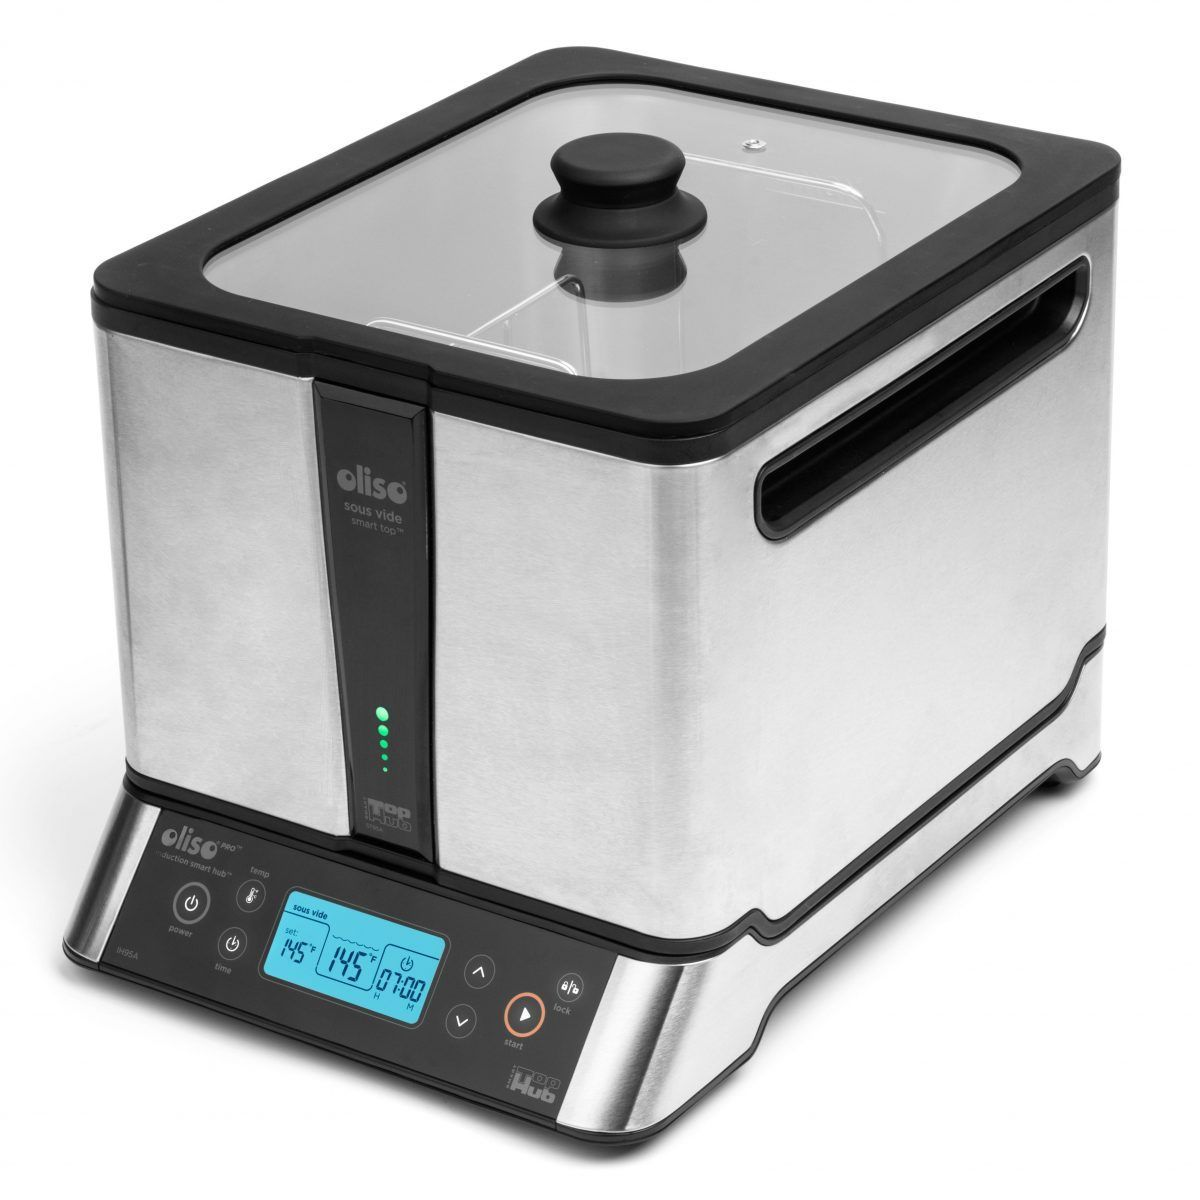 Oliso Sous Vide Smart Hub Induction Cooker with Bonus PolyScience Smoking Gun Sous Vide Machine Oliso